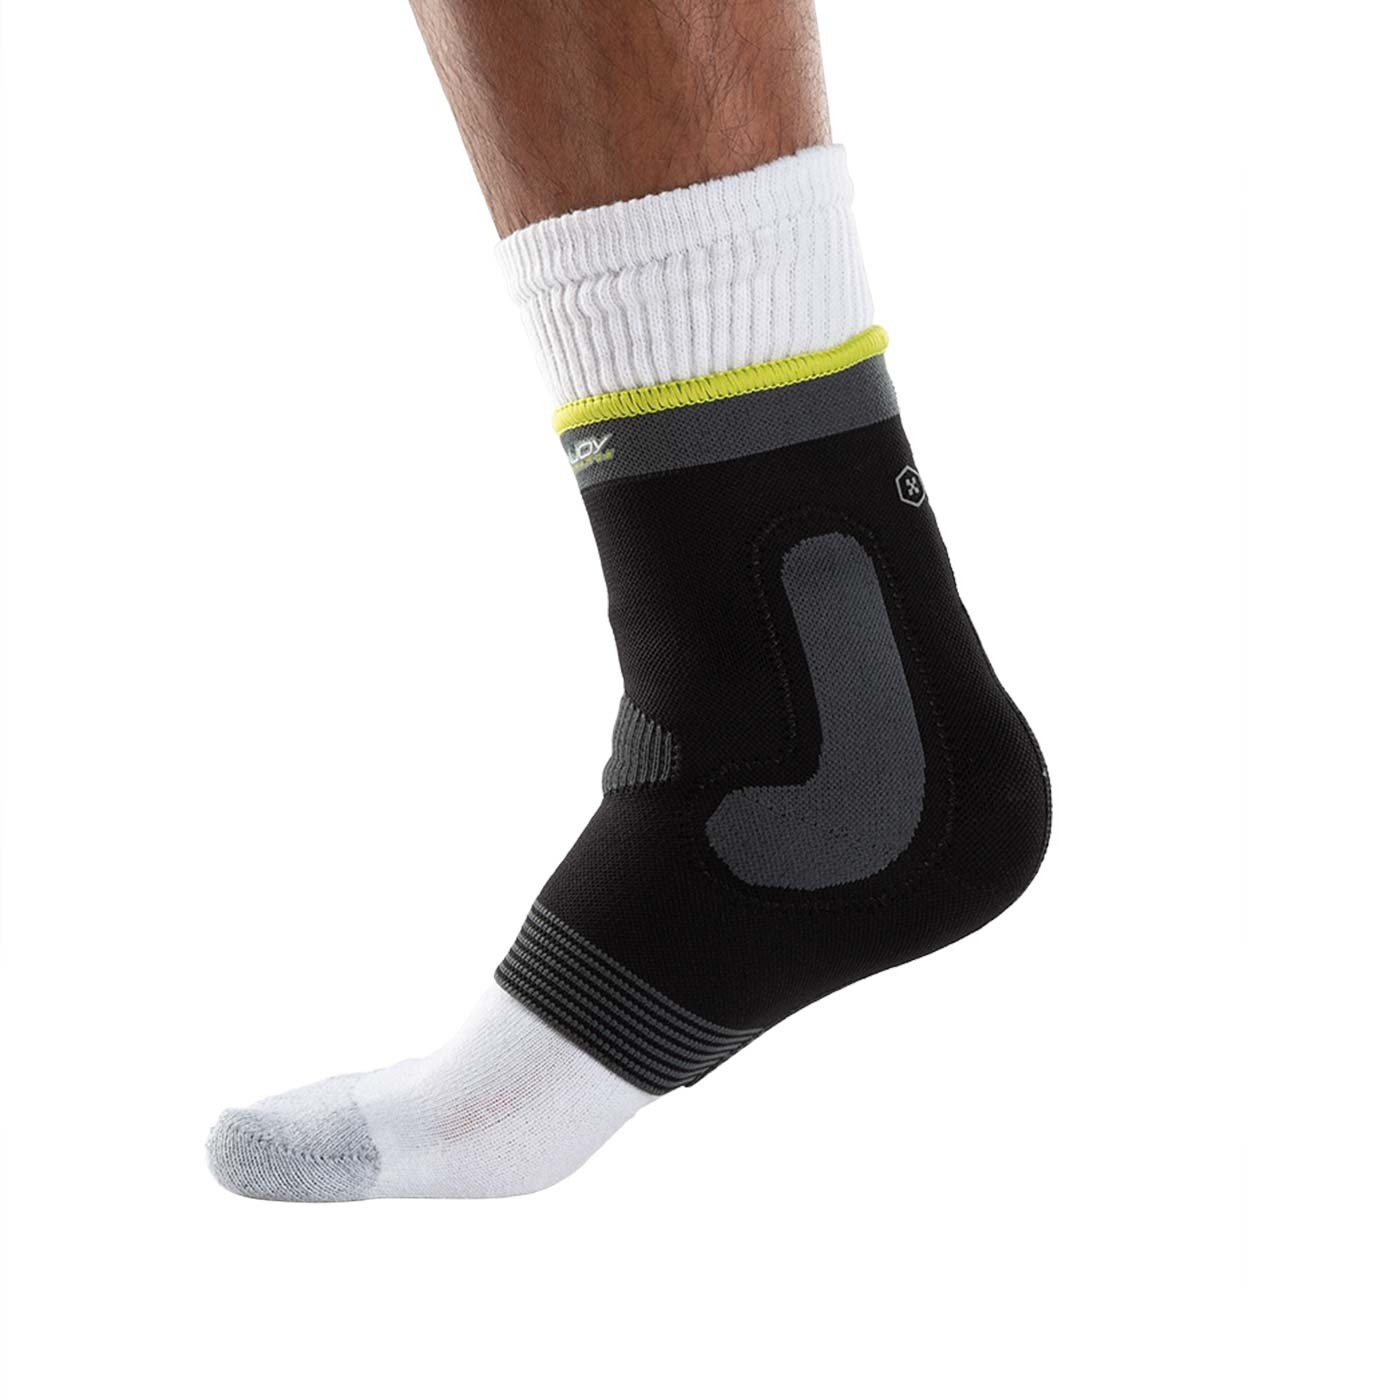 DonJoy Performance Deluxe Knit Ankle Sleeve